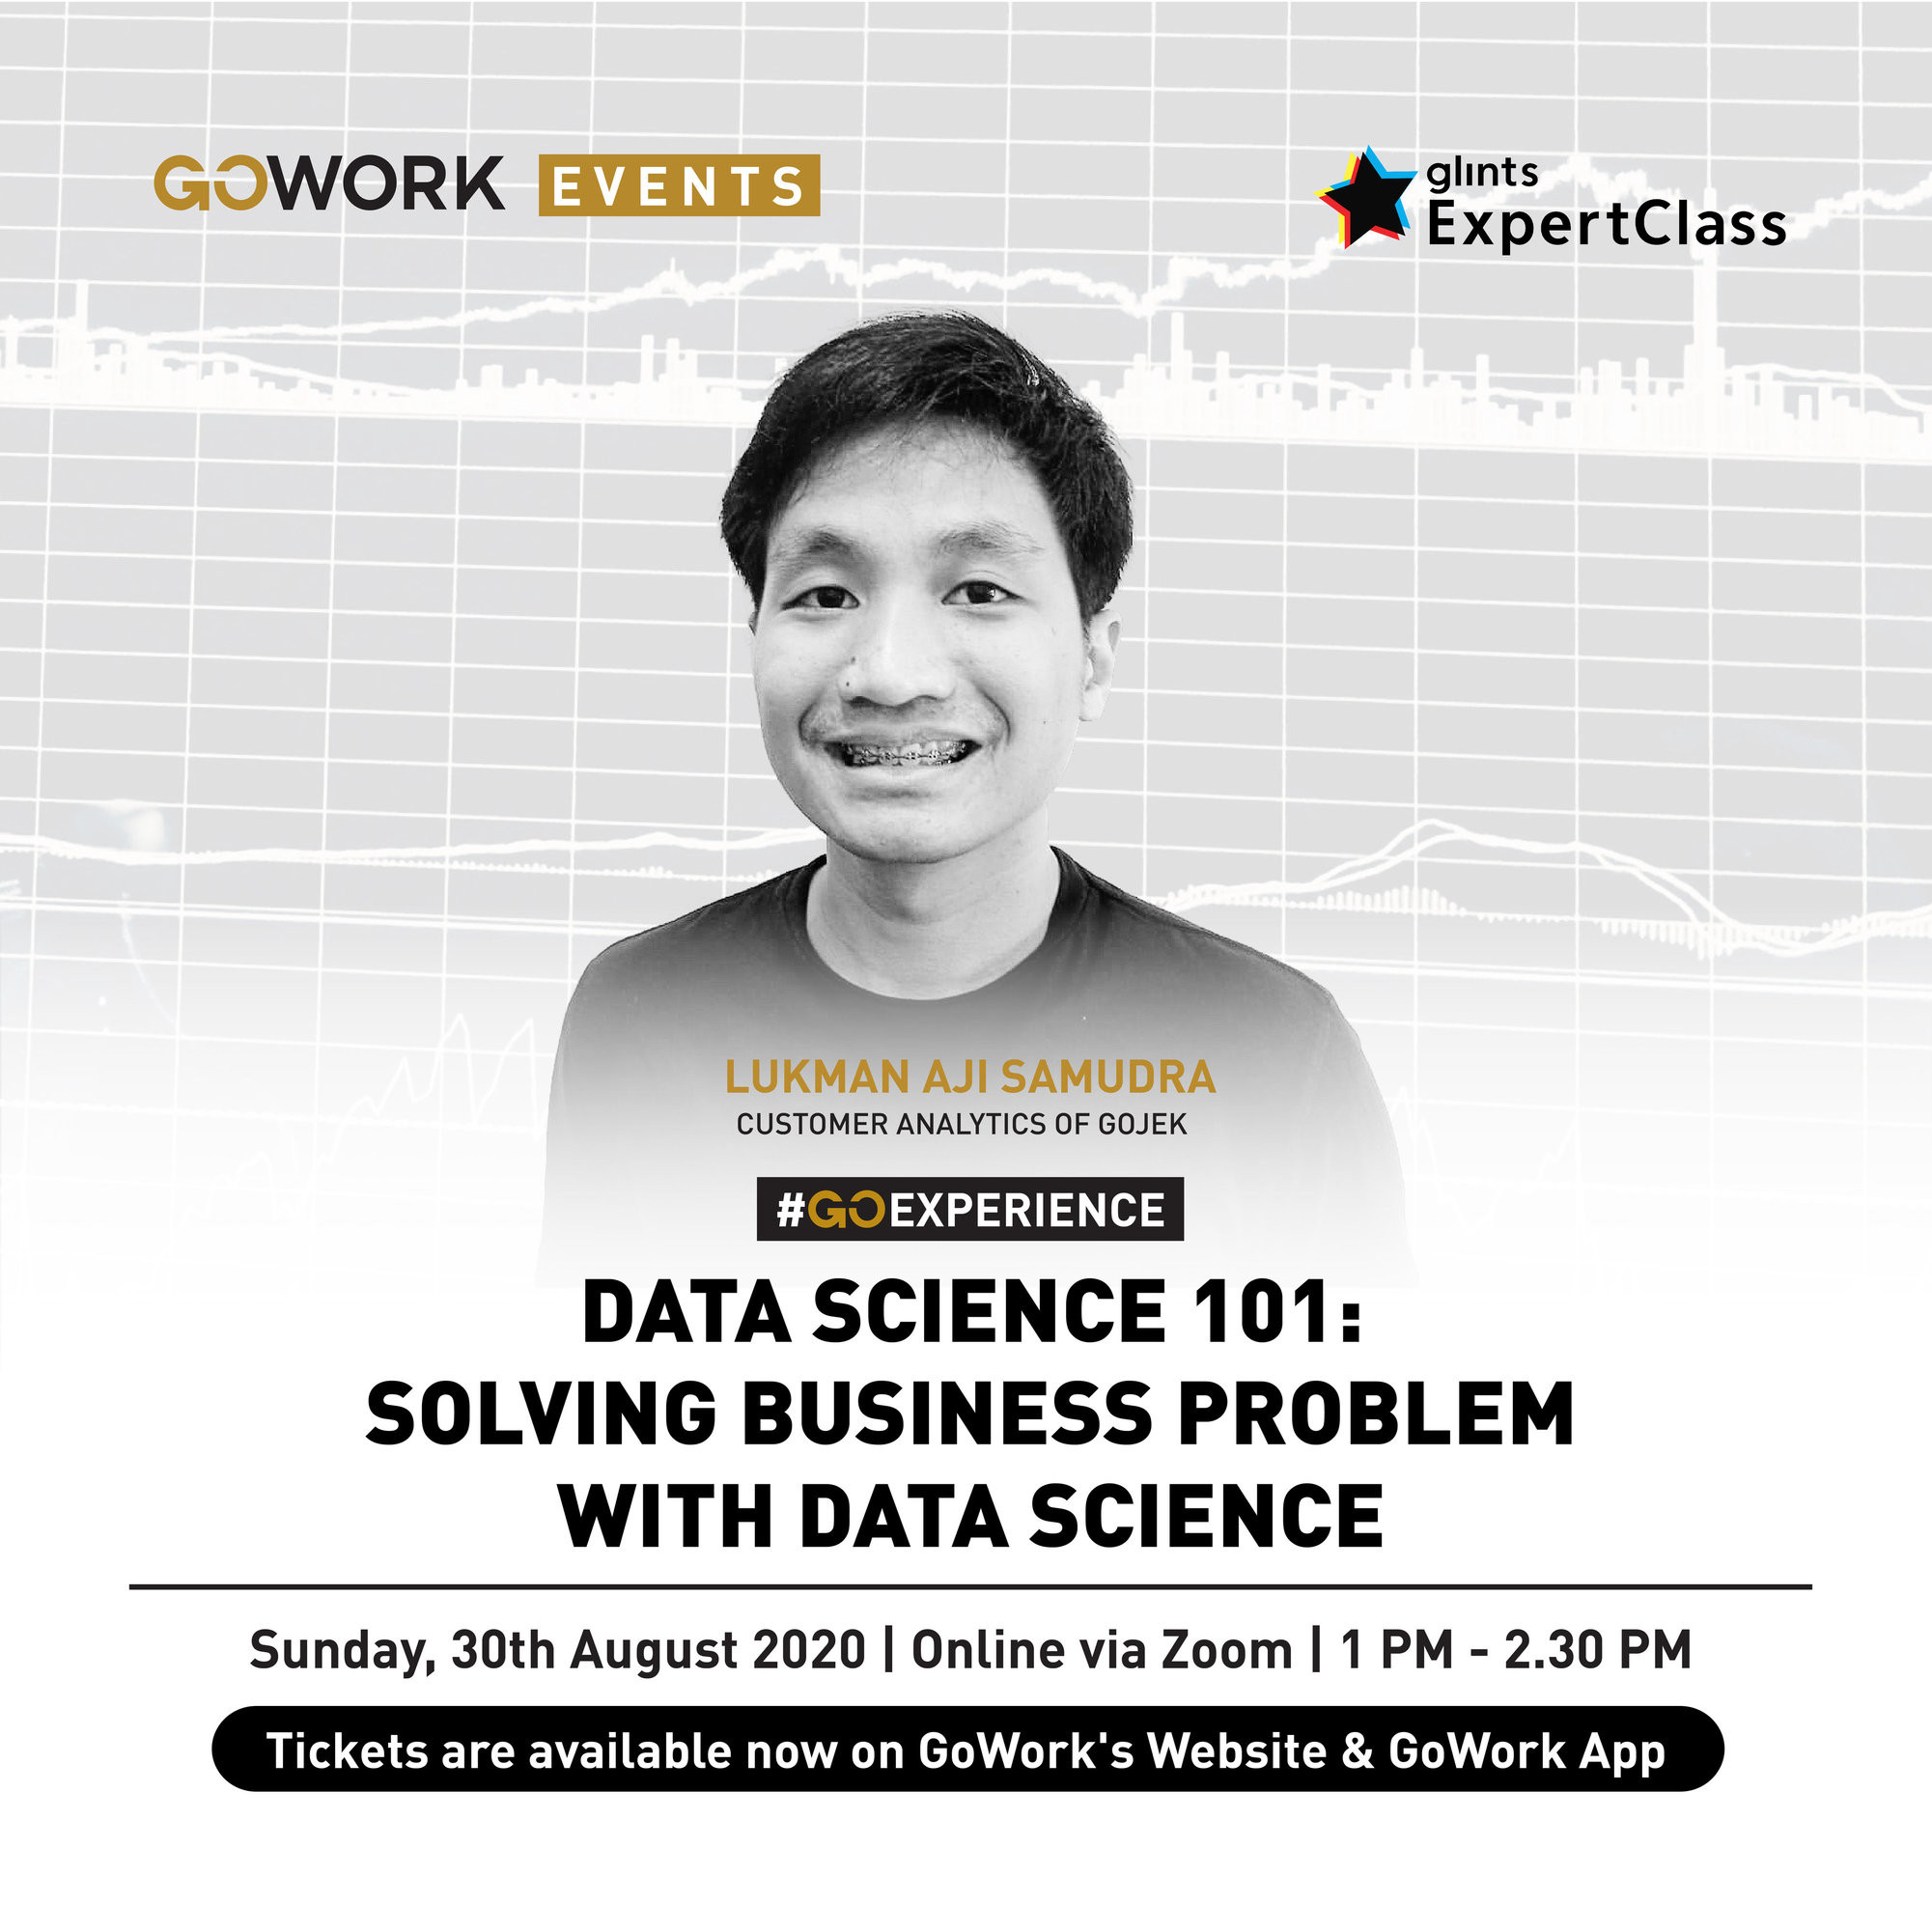 Data Science 101: Solving Business Problem with Data Science